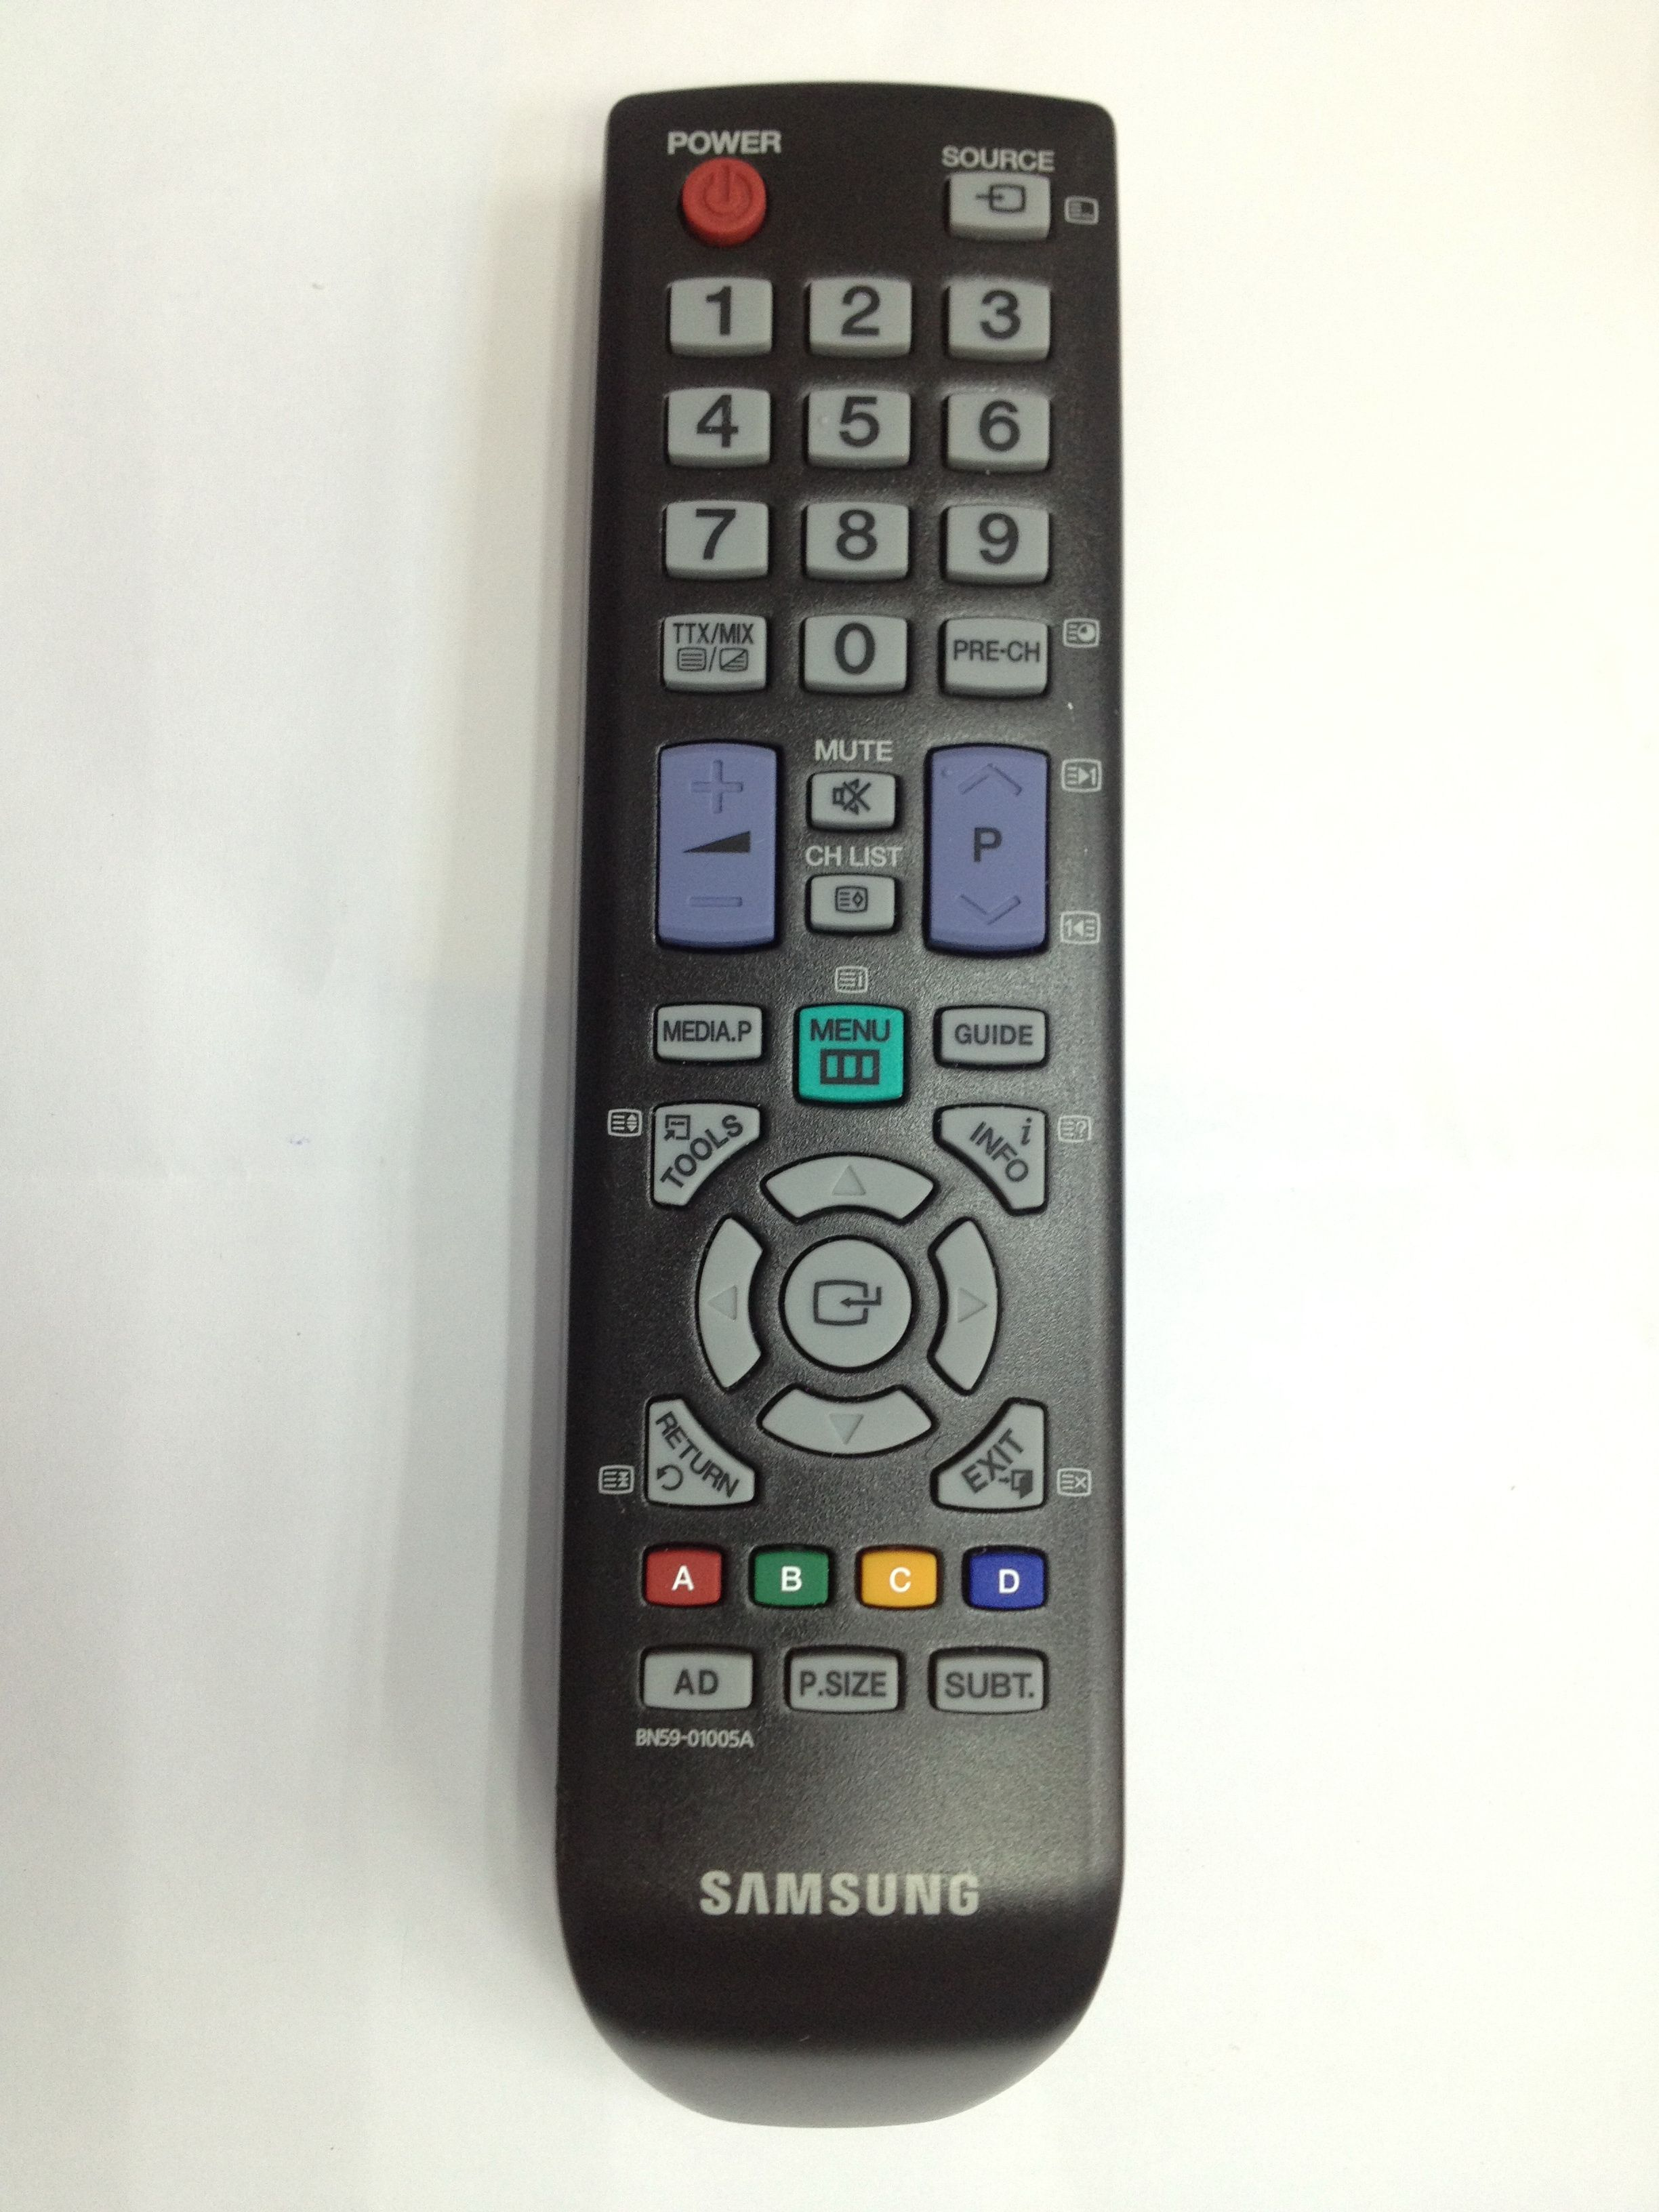 BN5901005A SAMSUNG Original remote control . We Offer